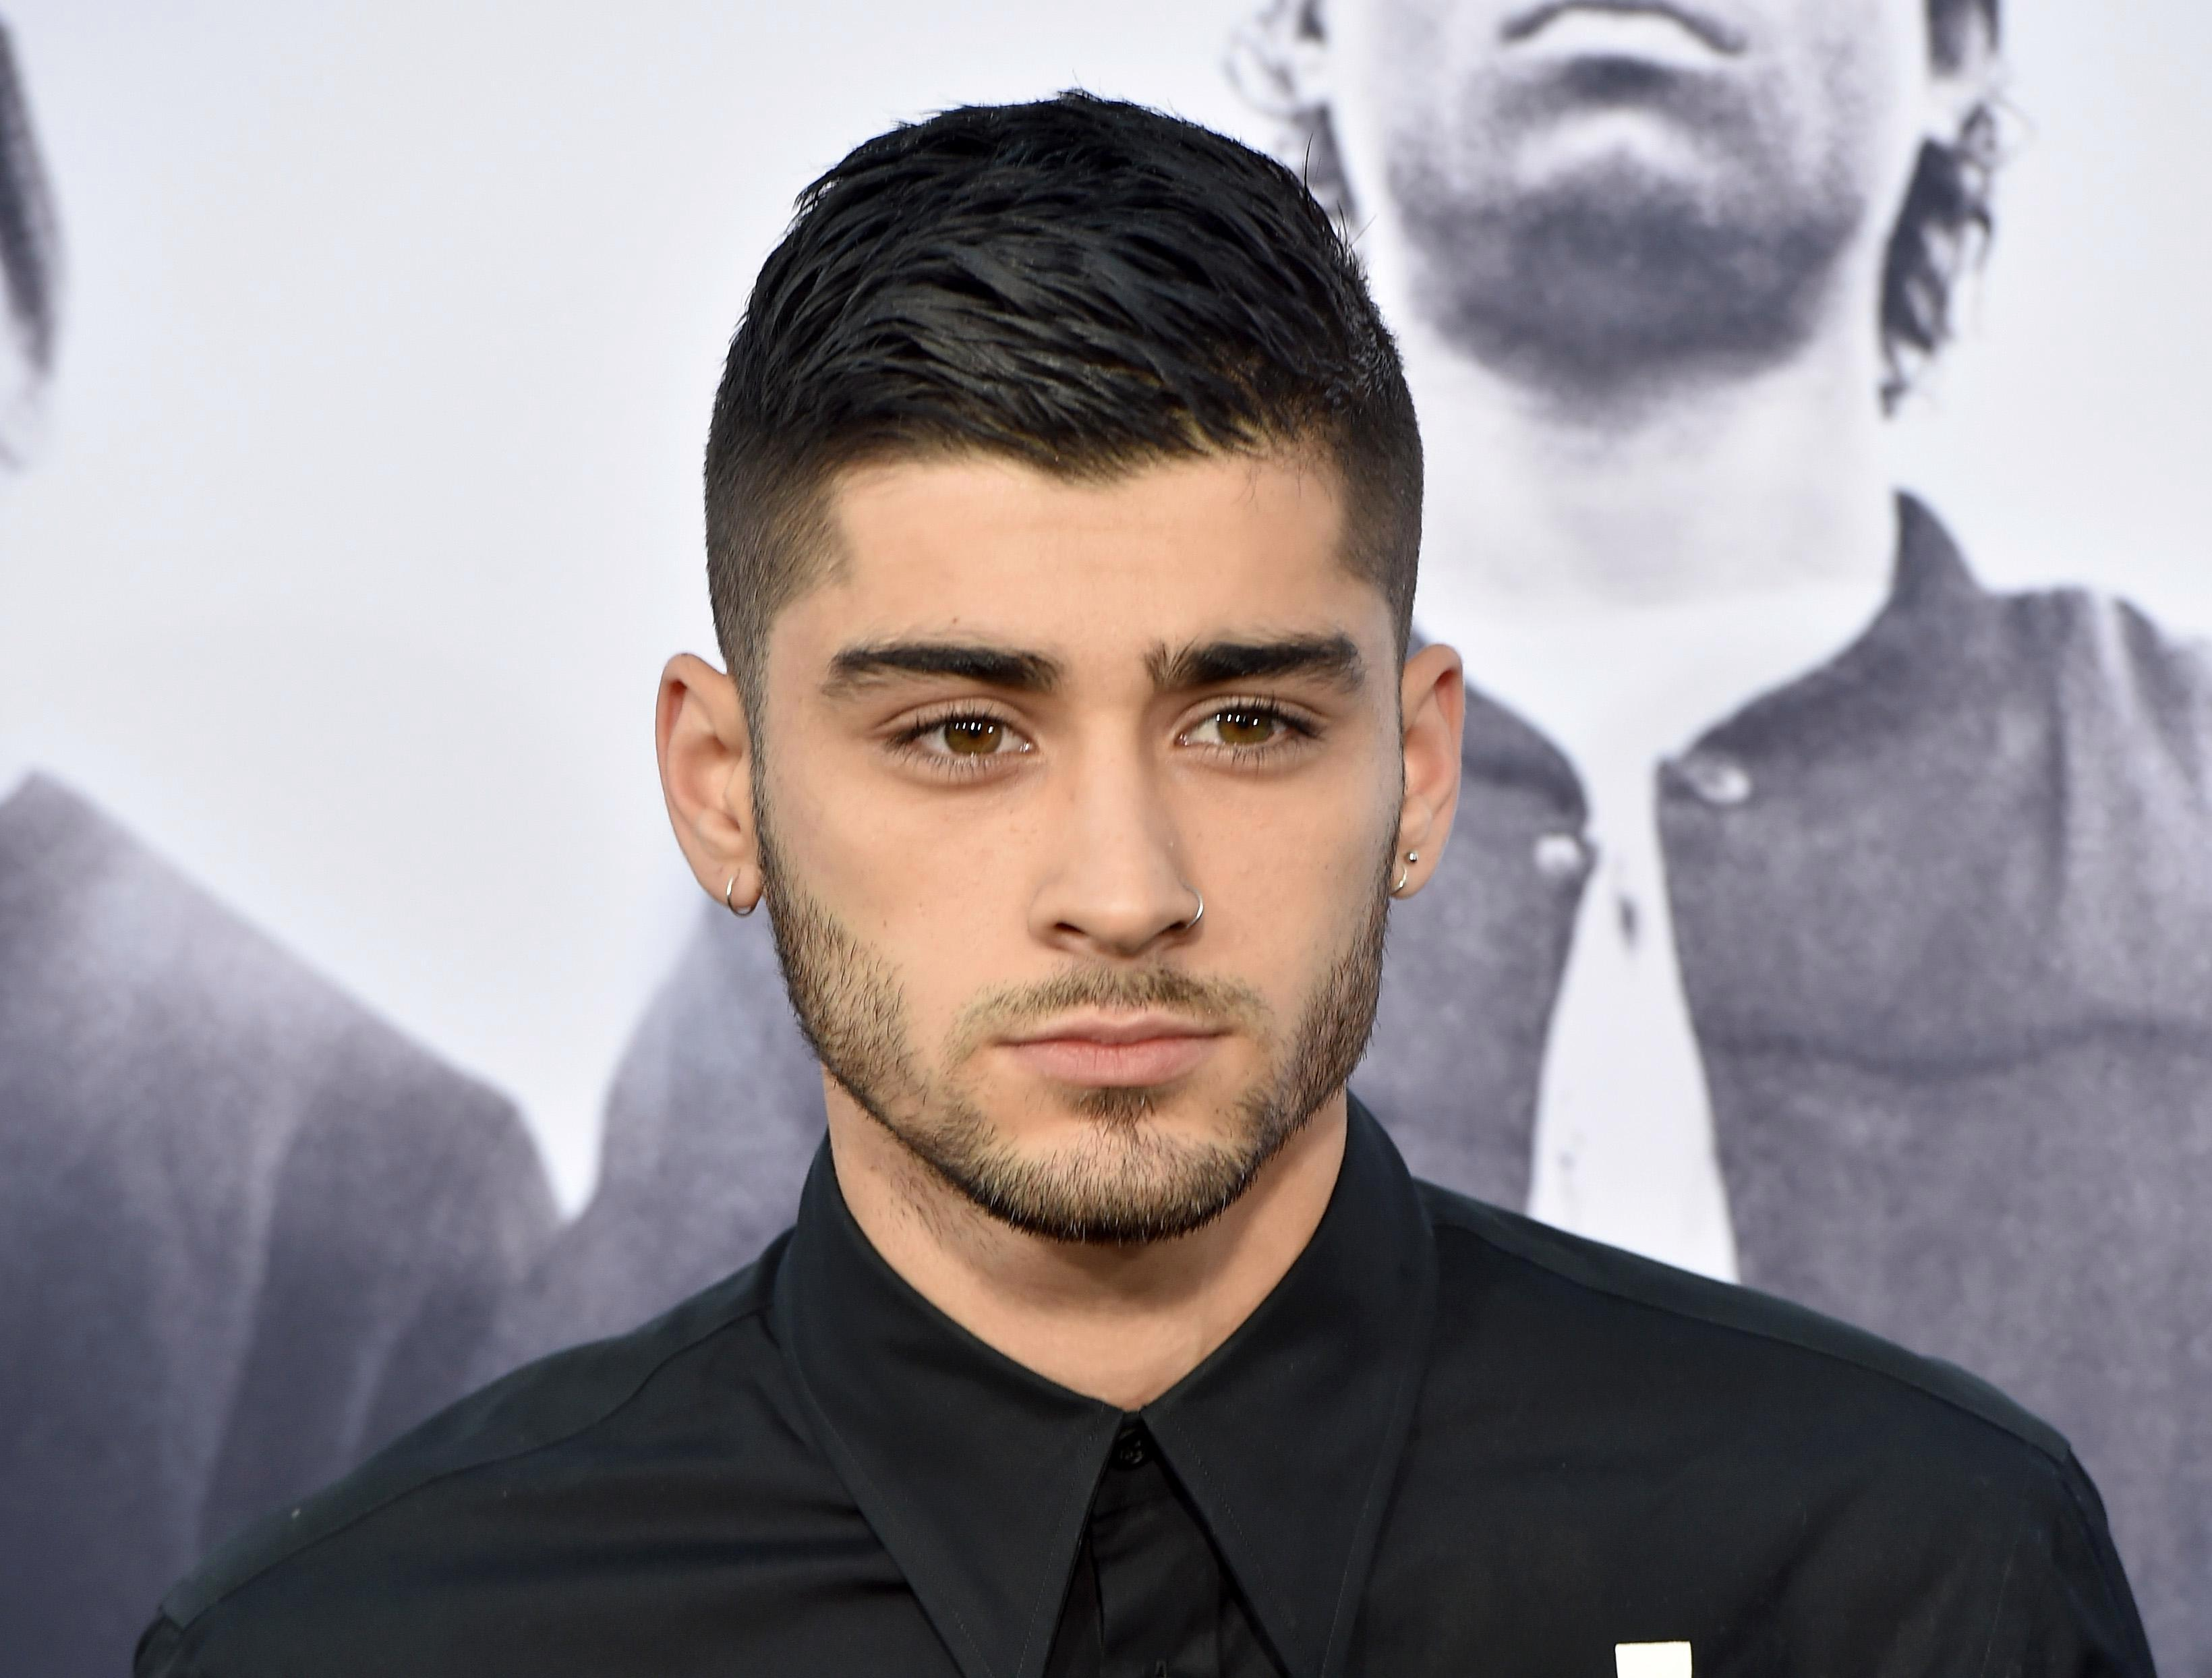 How old is Zayn Malik, why did he go bald, what's his net worth and how long has he been dating girlfriend Gigi Hadid?